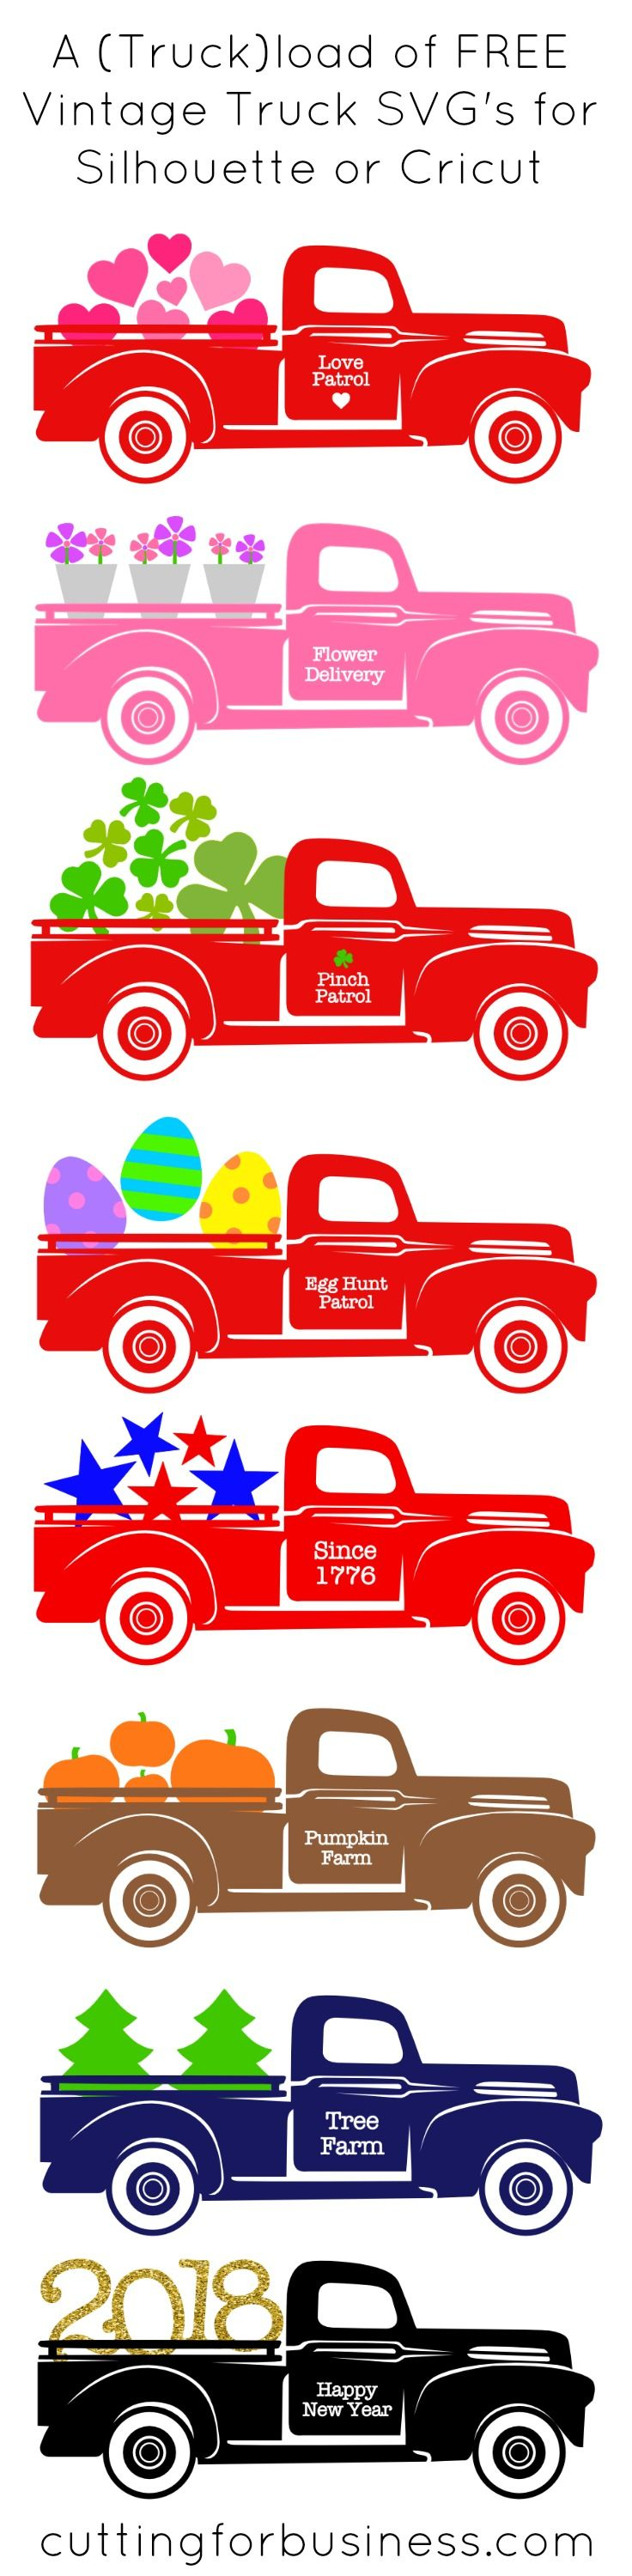 A Year of Free Red Truck Holiday SVG Cut Files Vintage